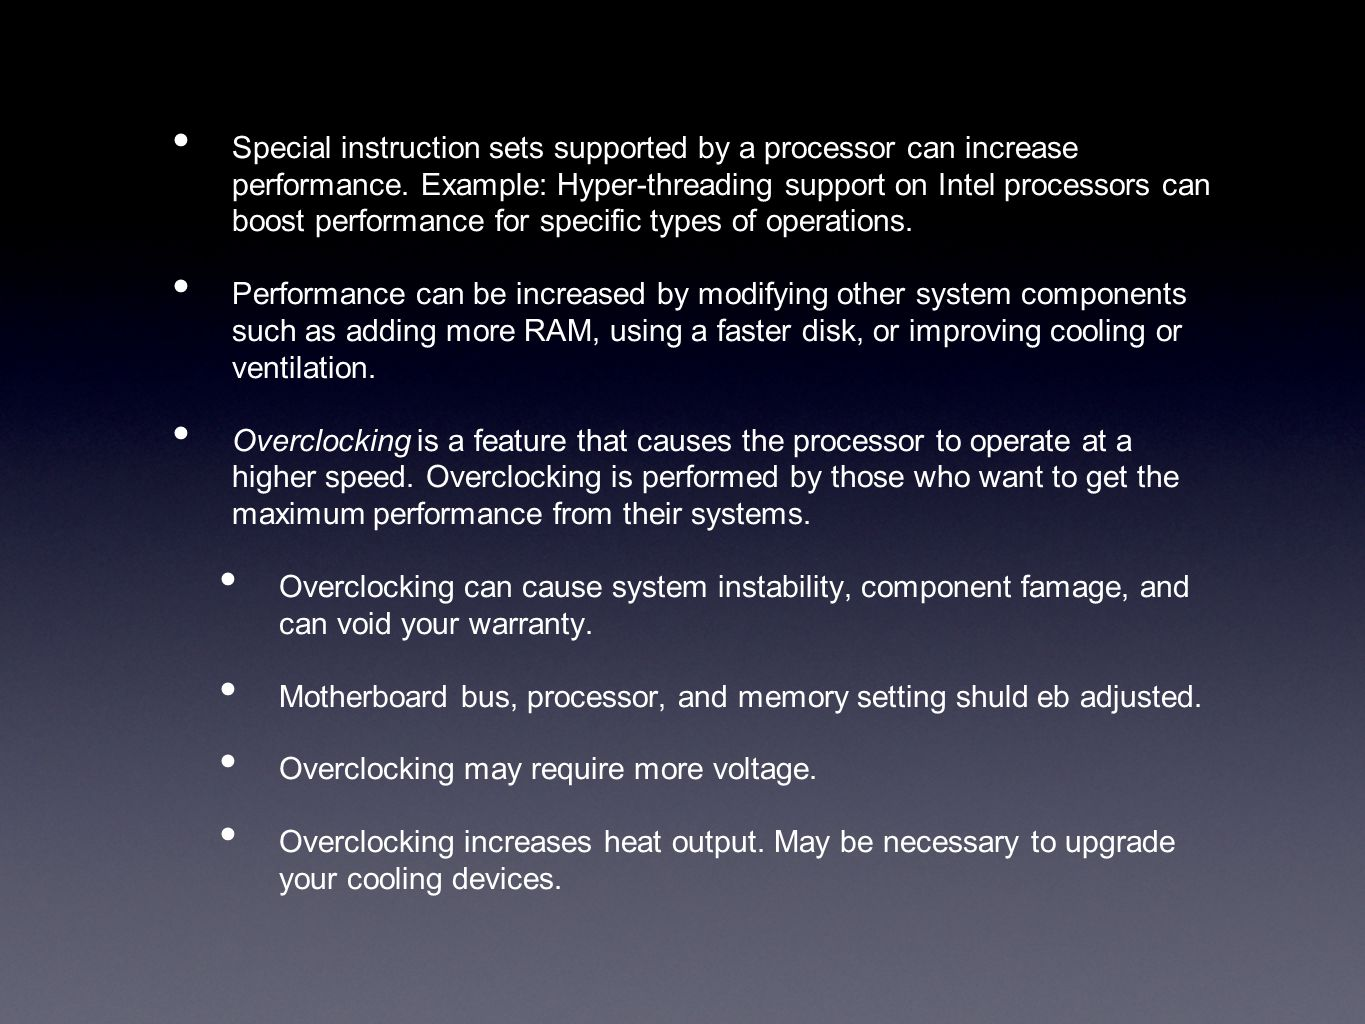 Special instruction sets supported by a processor can increase performance. Example: Hyper-threading support on Intel processors can boost performance